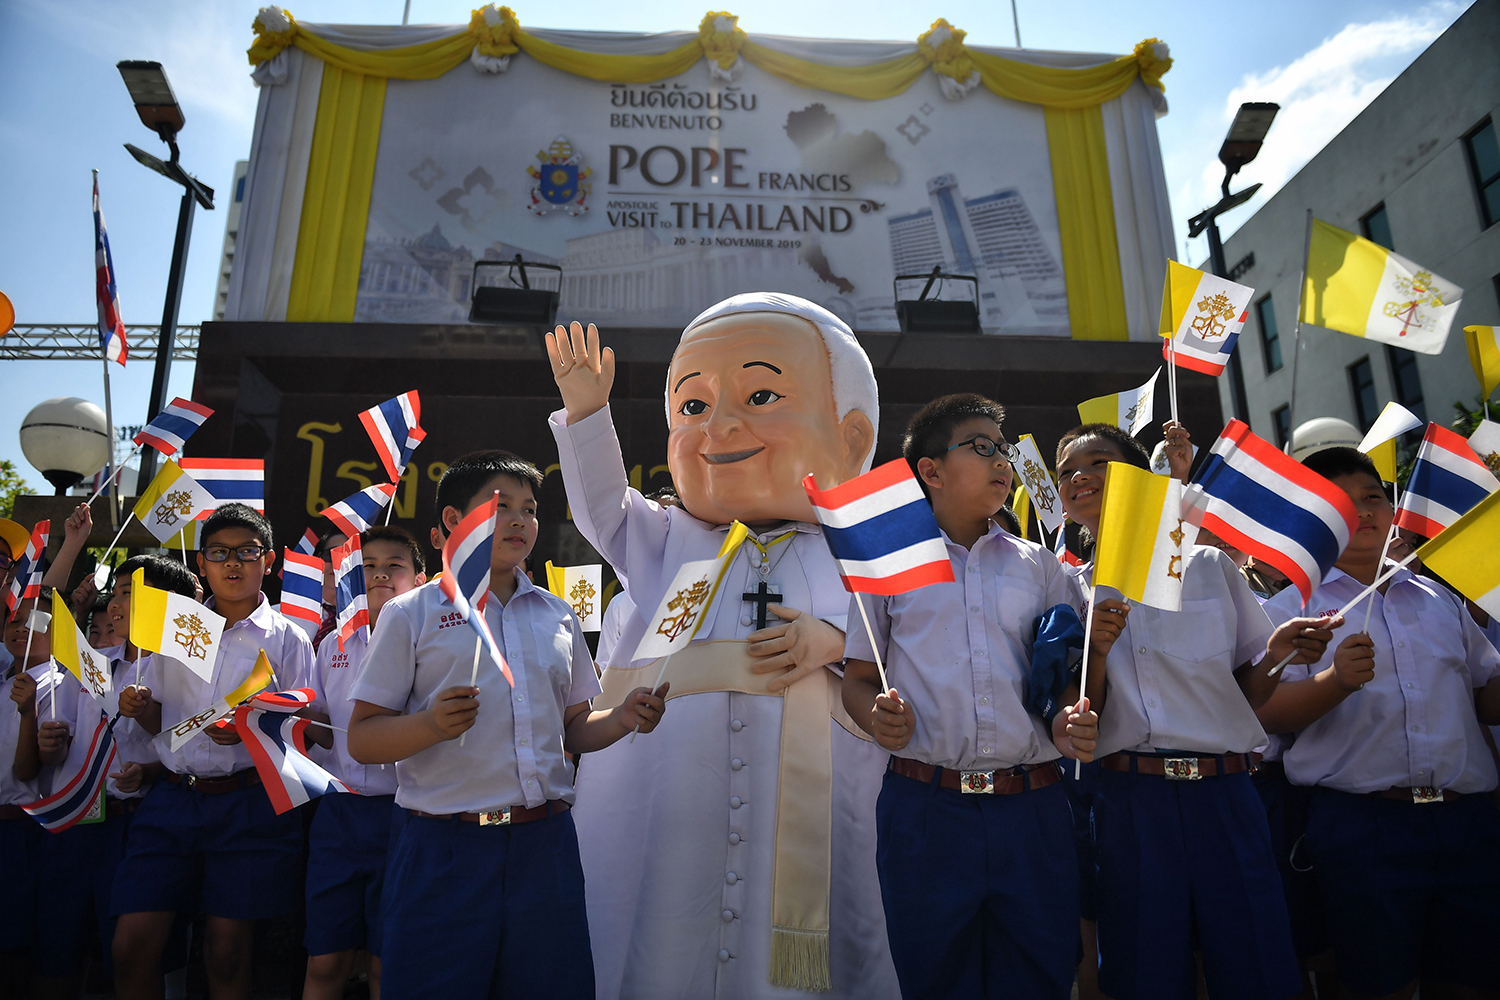 Catholic schoolchildren wait for Pope Francis to arrive outside of the Apostolic Nunciature of the Holy See in Bangkok on Nov. 20. LILLIAN SUWANRUMPHA/AFP via Getty Images